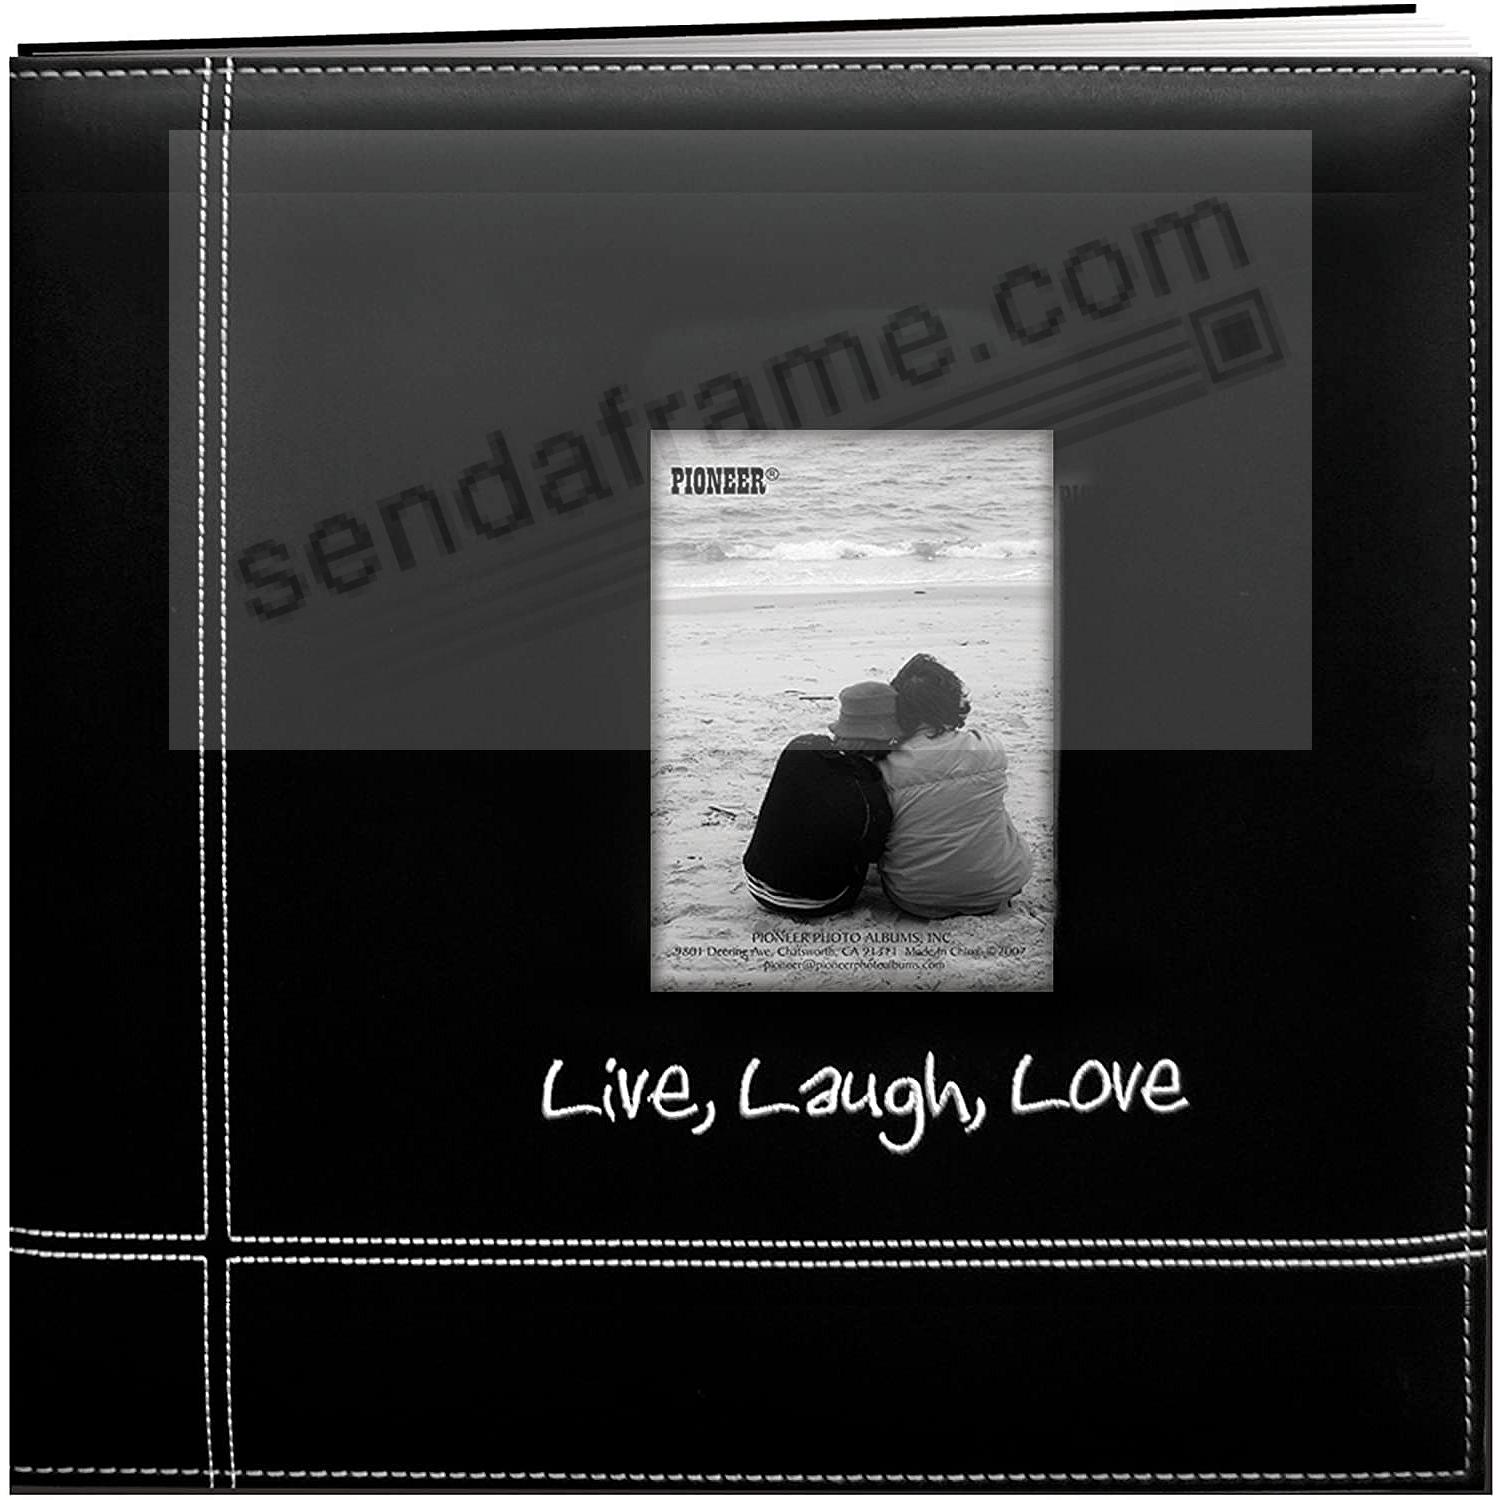 LIVE-LAUGH-LOVE BLACK Leatherette Embroidered 12x12 Scrapbook by Pioneer®